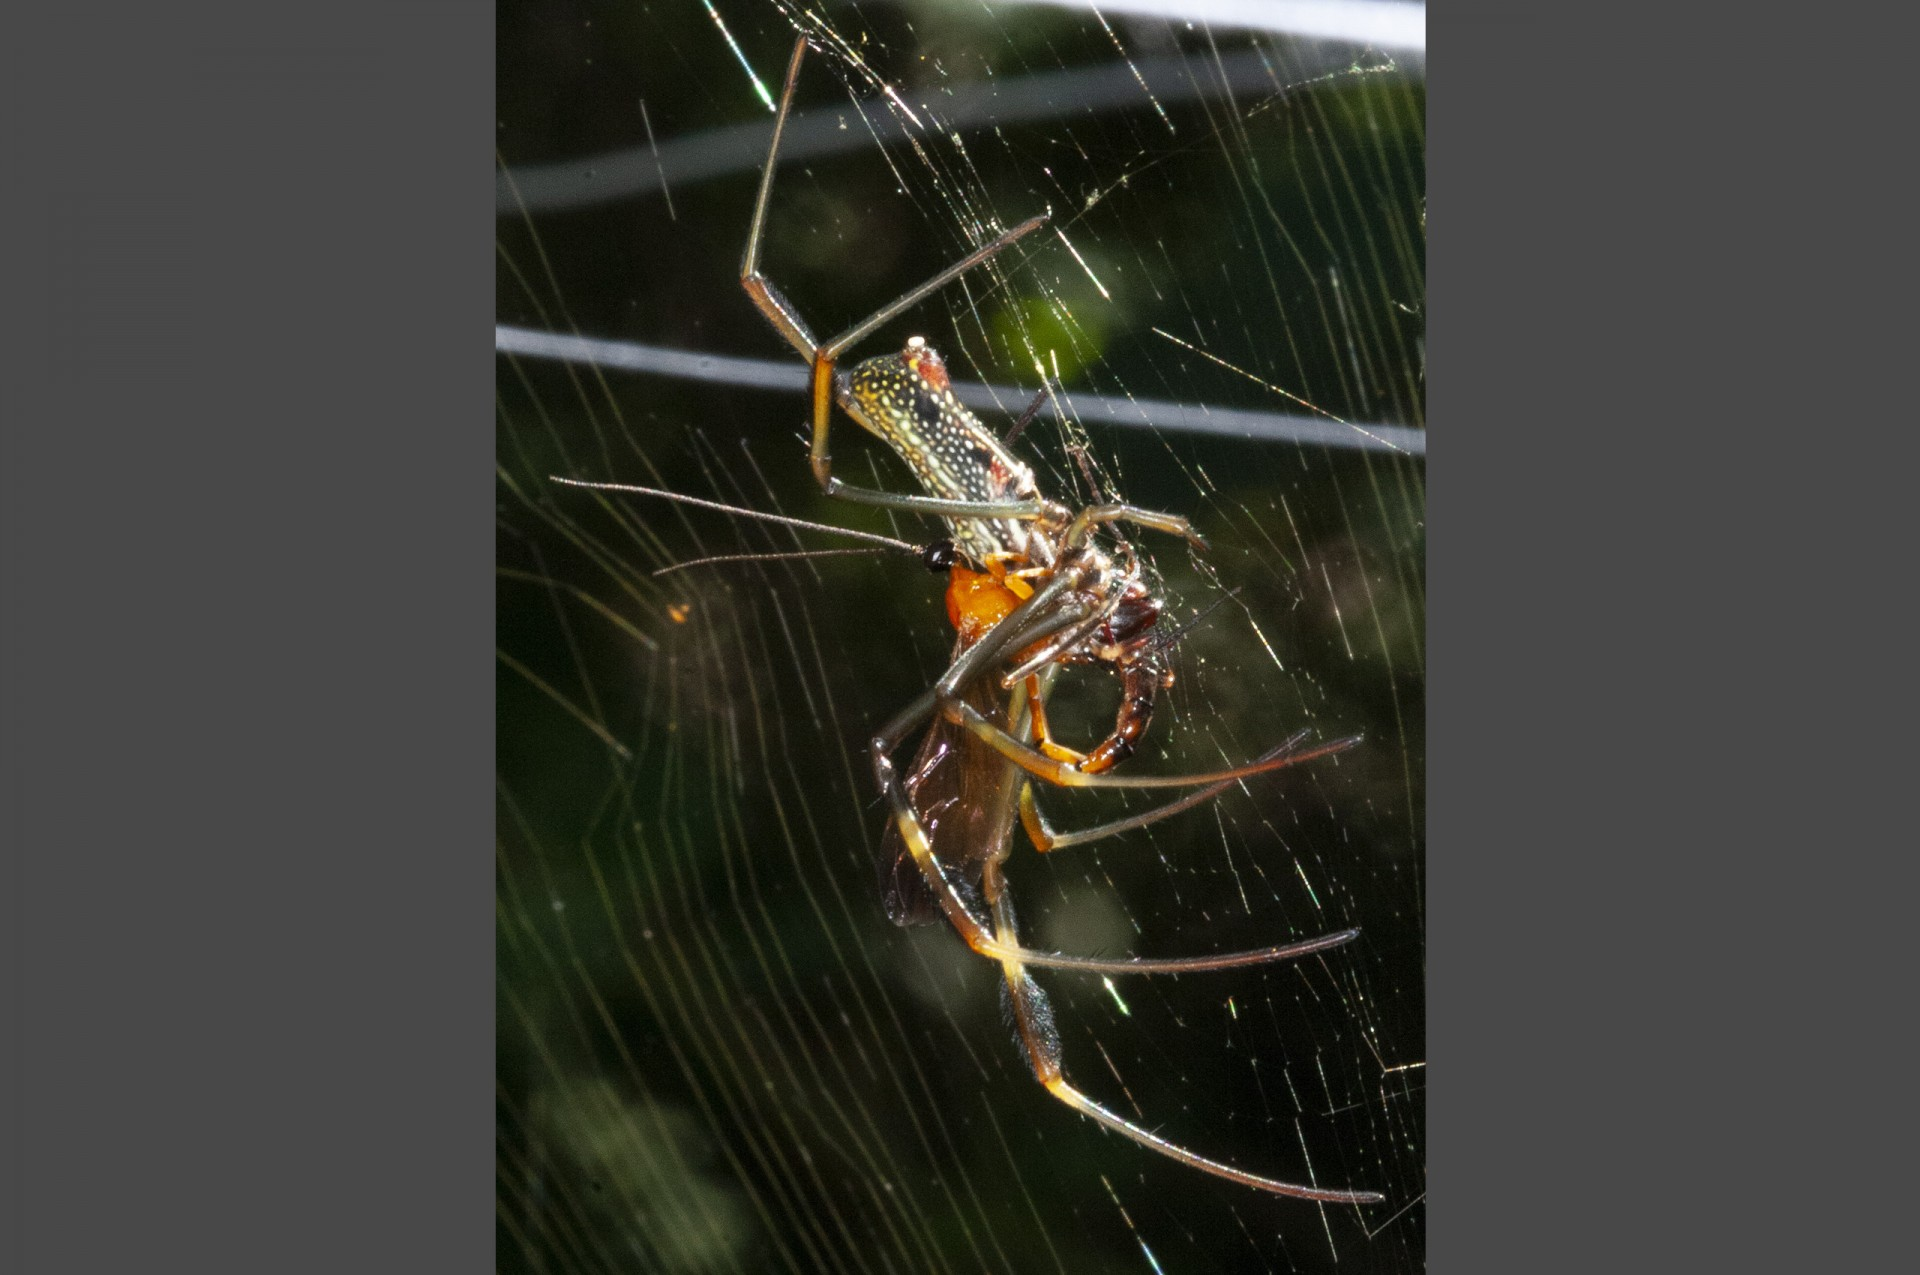 A wasp lays an egg on the spotted abdomen of its spider host